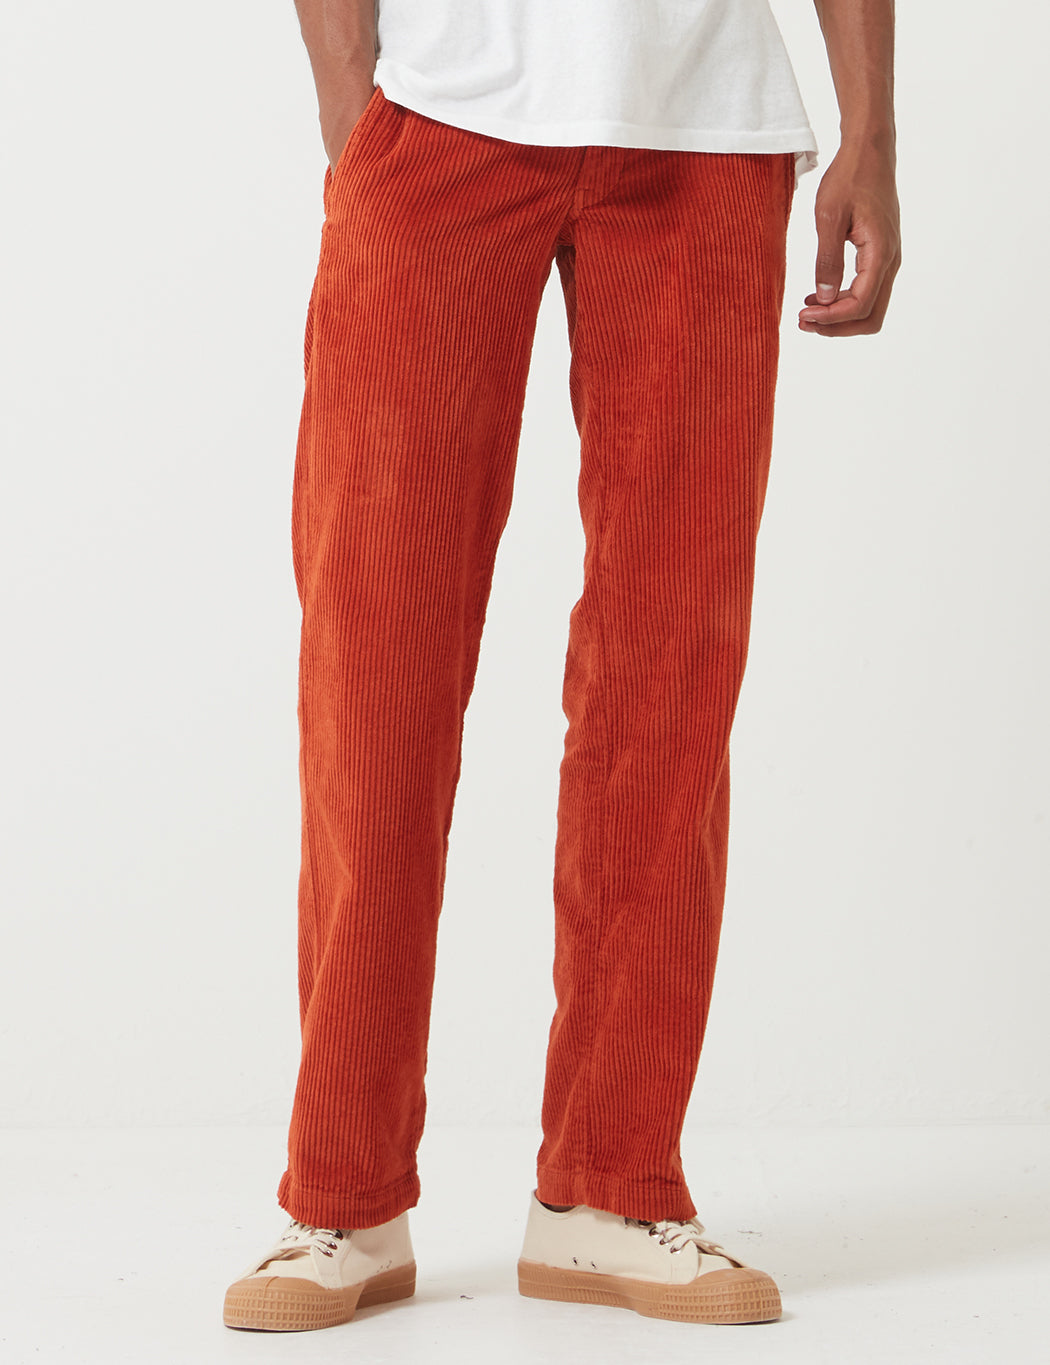 Dickies Cloverport Pant (Cord) - Rust Red